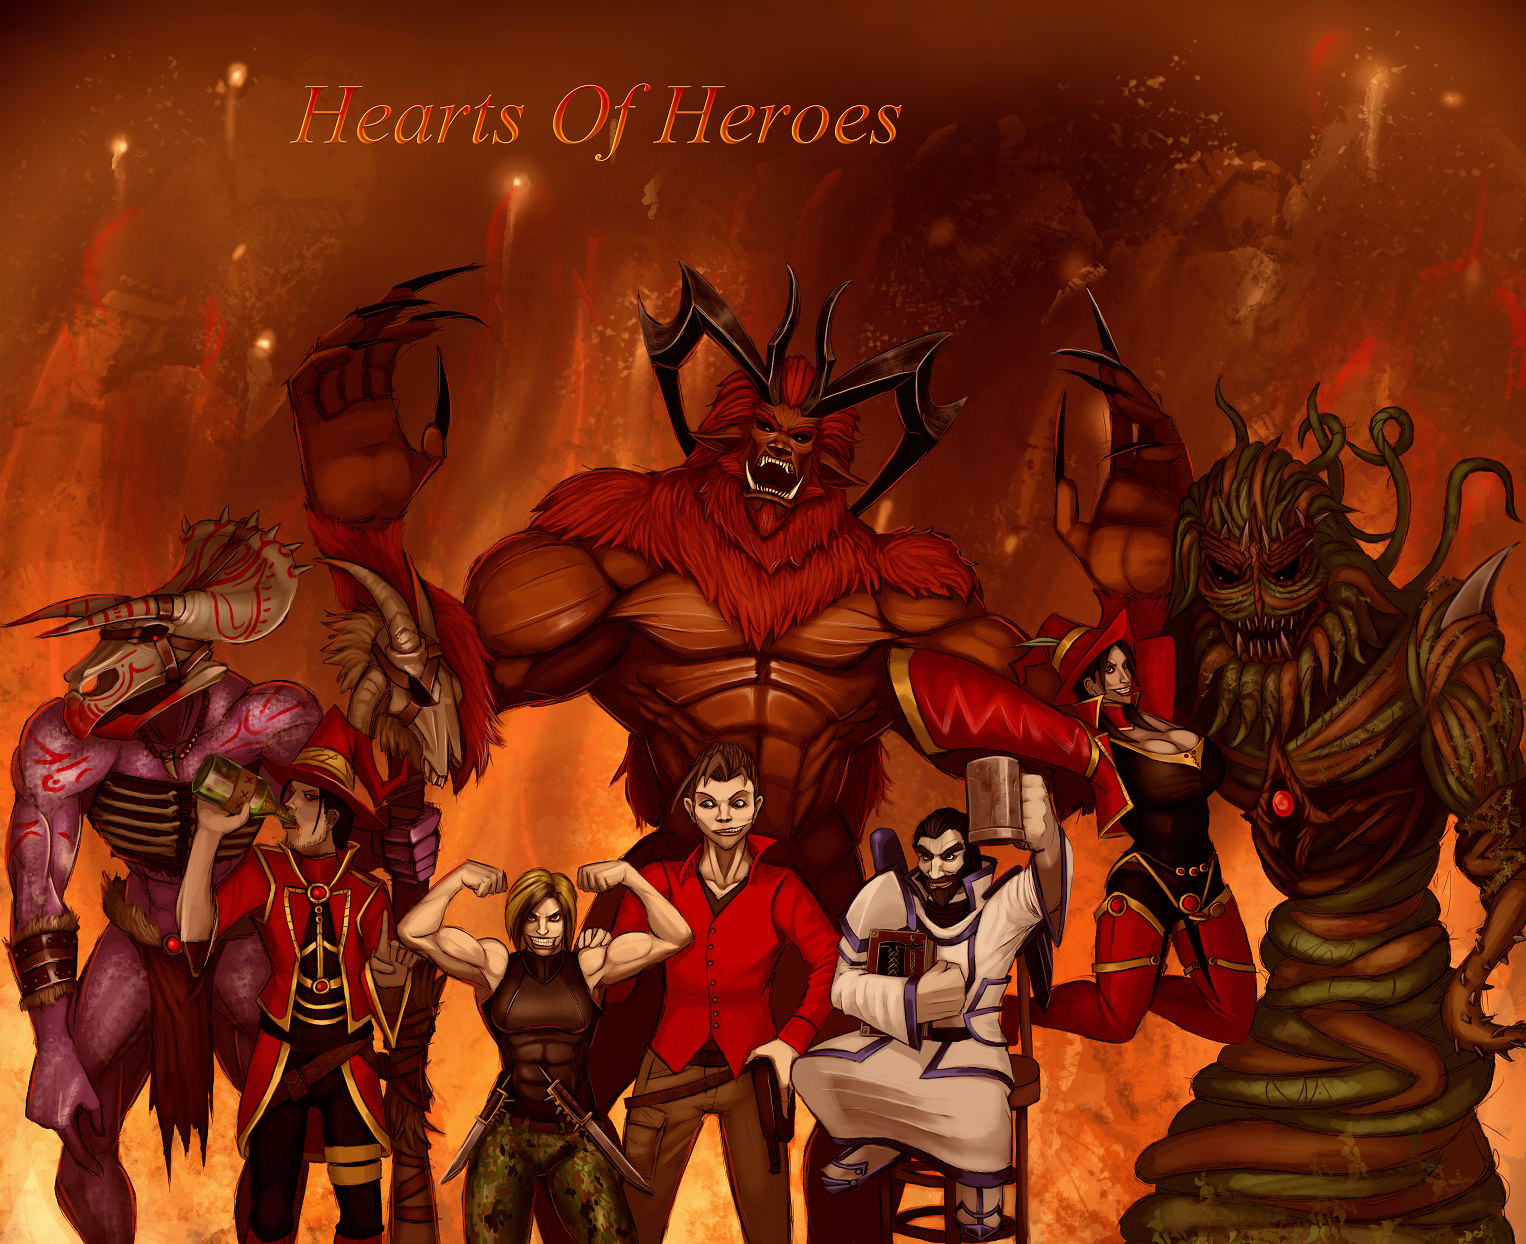 Hearts of heroes